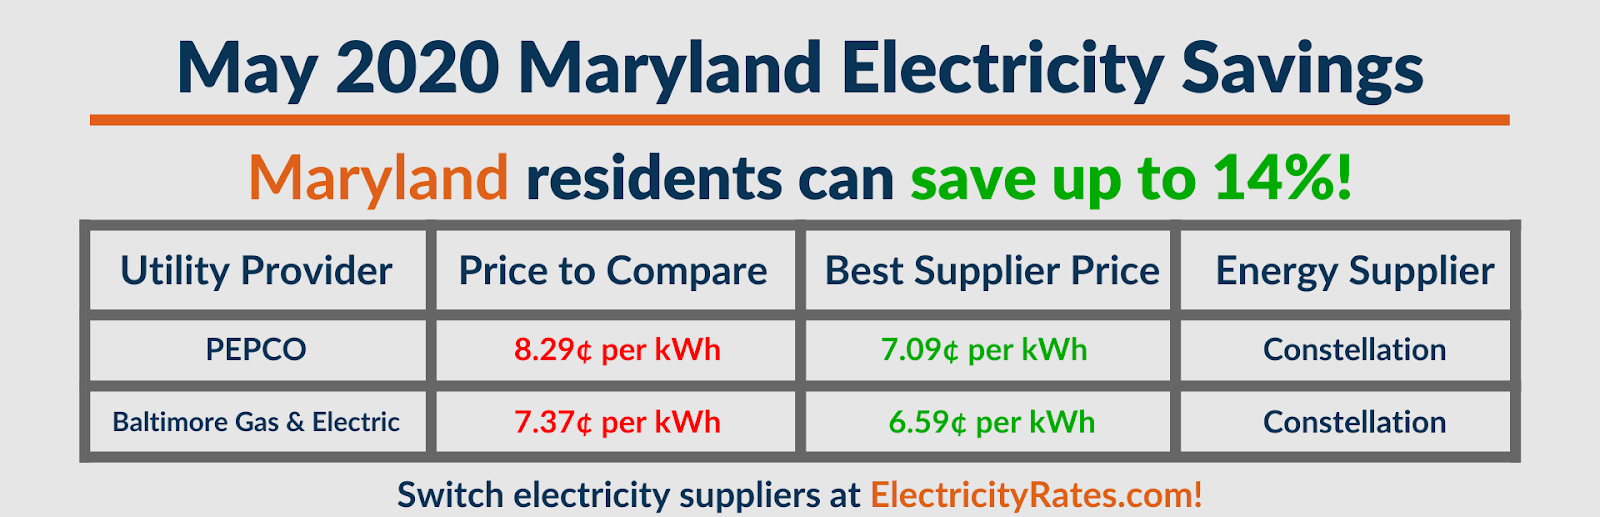 Graphic depicting May 2020 Maryland savings by utility